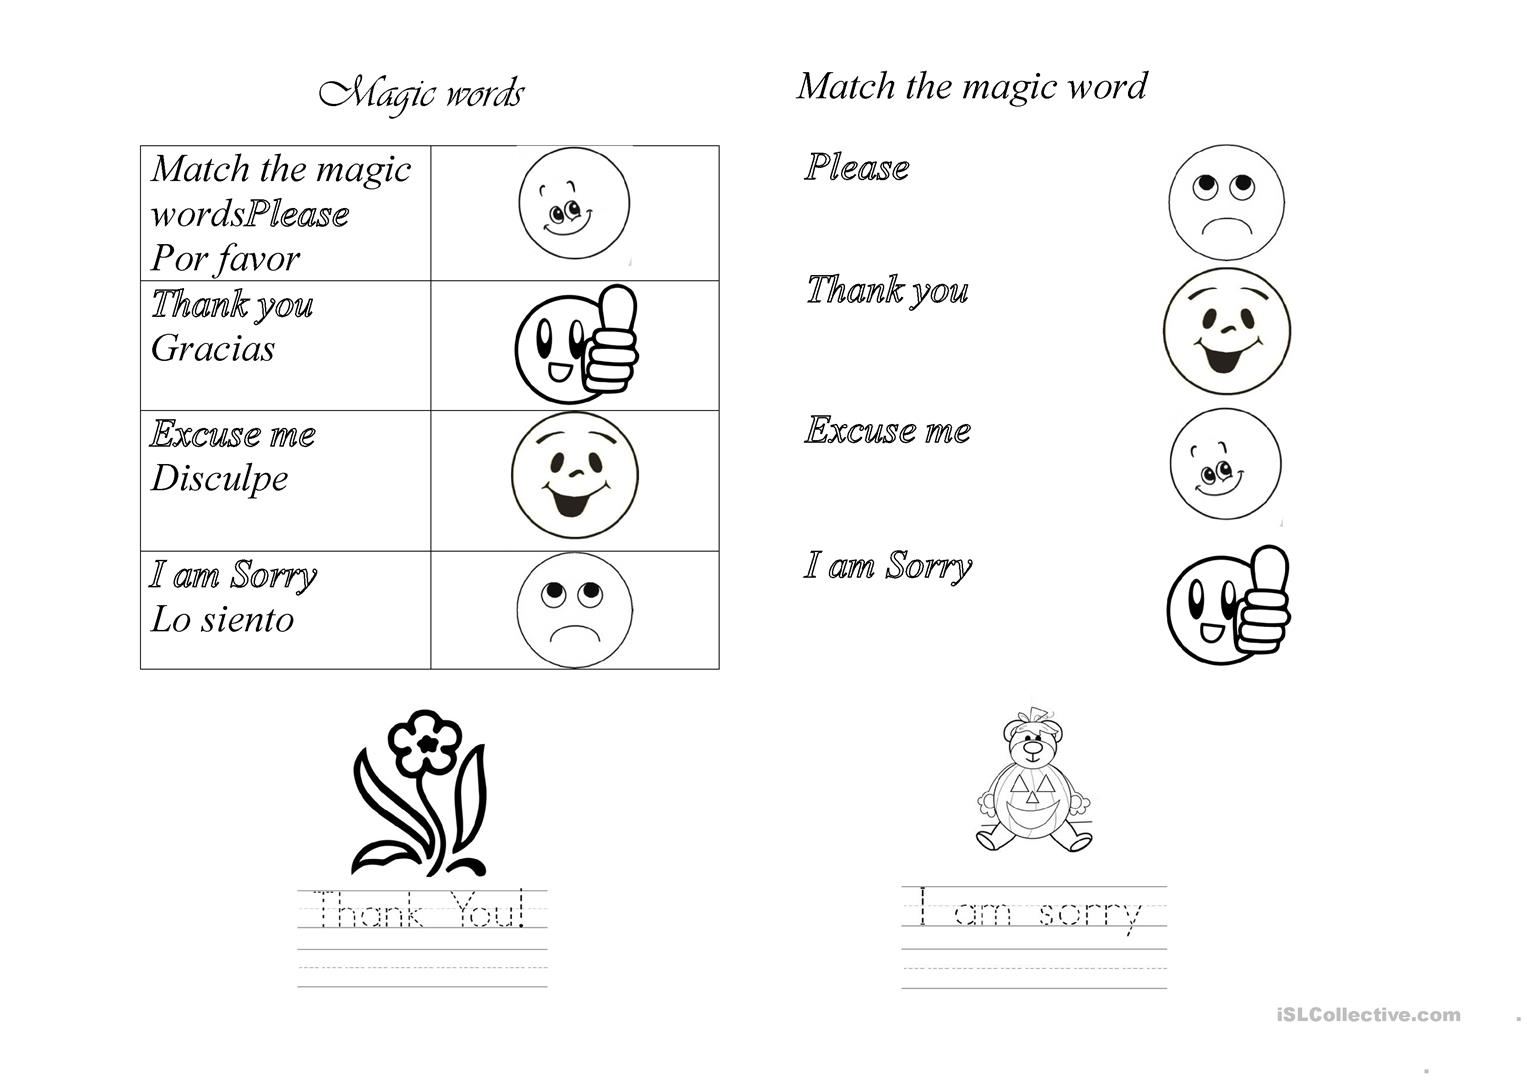 Worksheets Worksheet Magic magic words worksheet free esl printable worksheets made by teachers full screen